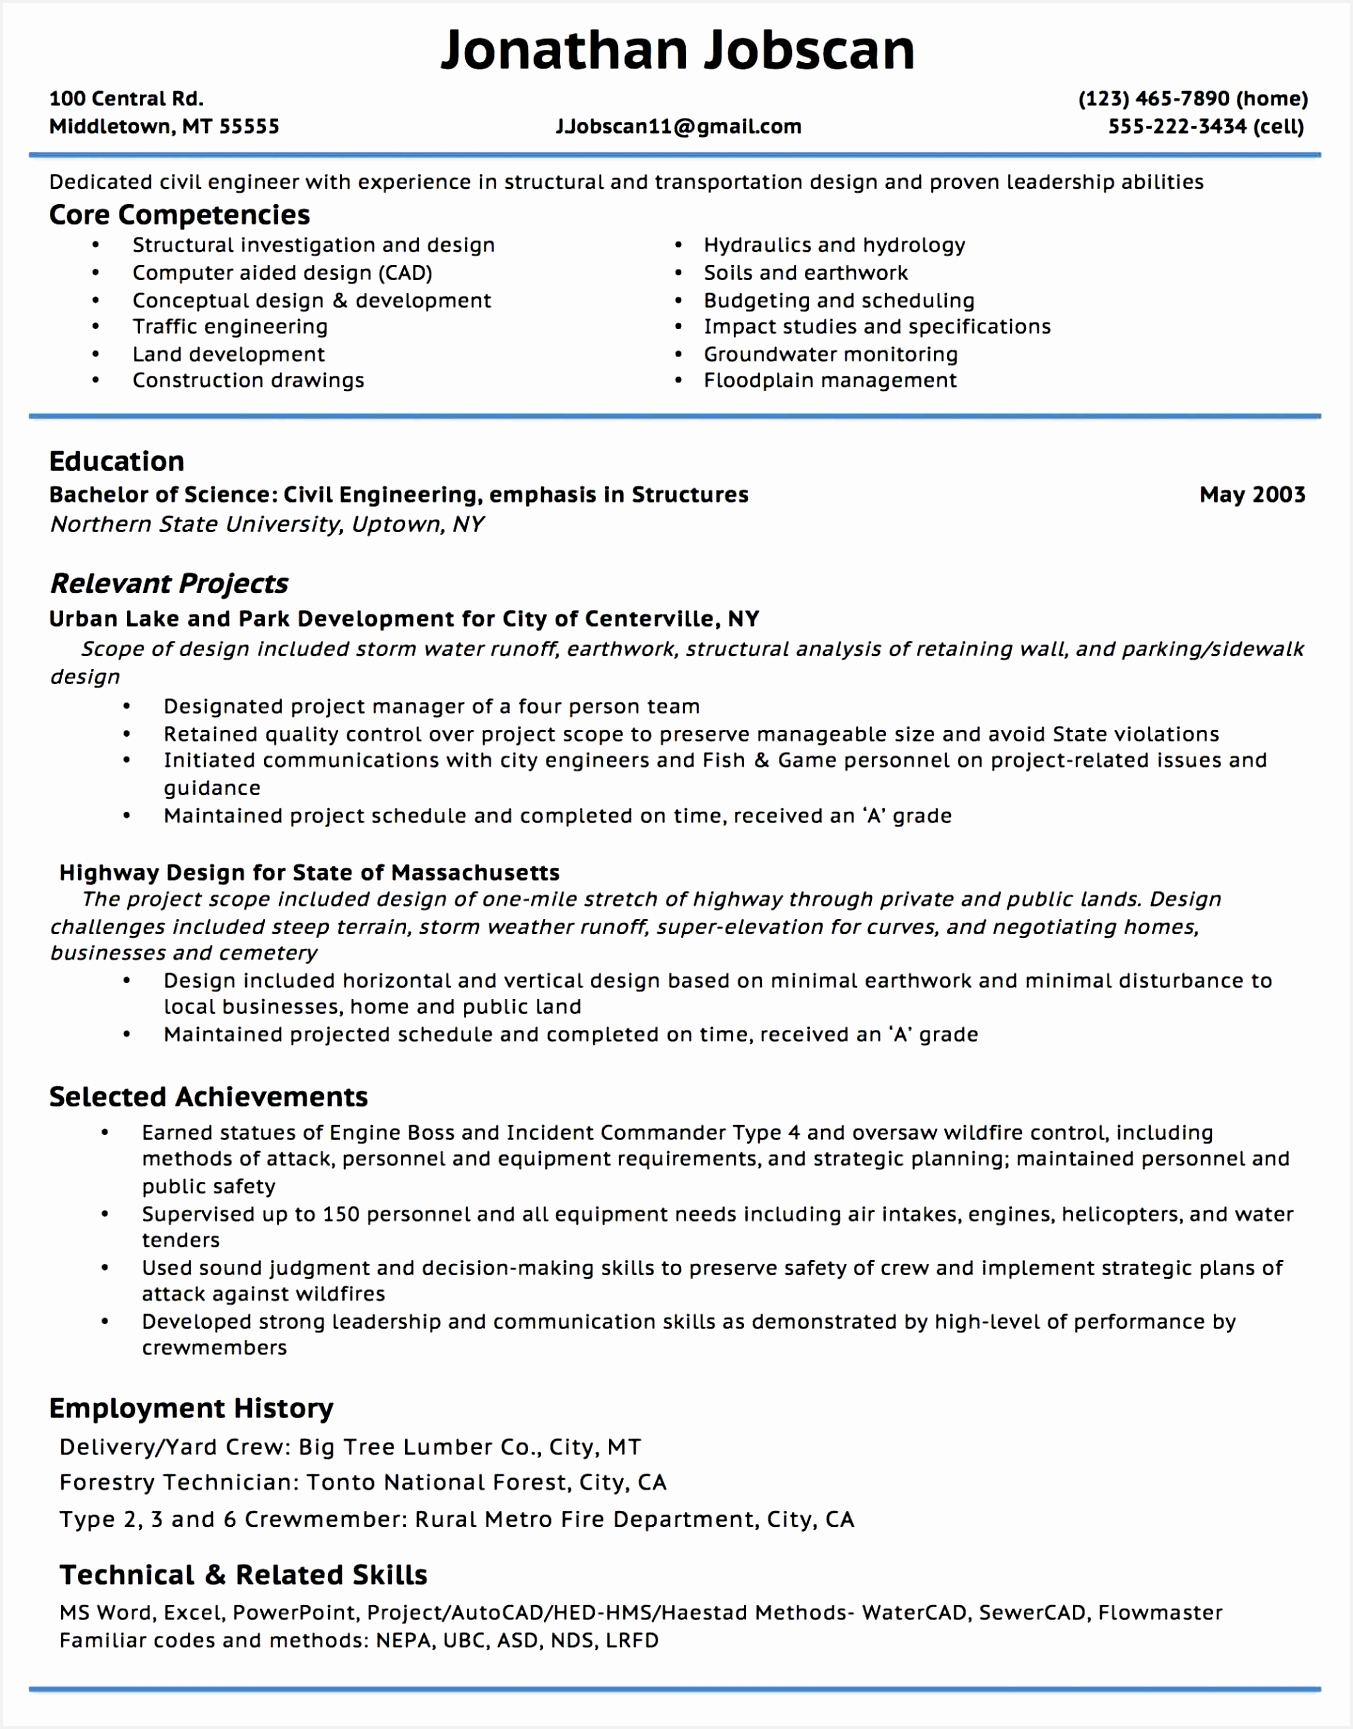 Oil and Gas Resume Samples Pdf Inspirational Landman Resume Sample Objective Examples Oil and Gas Template17291353erenm